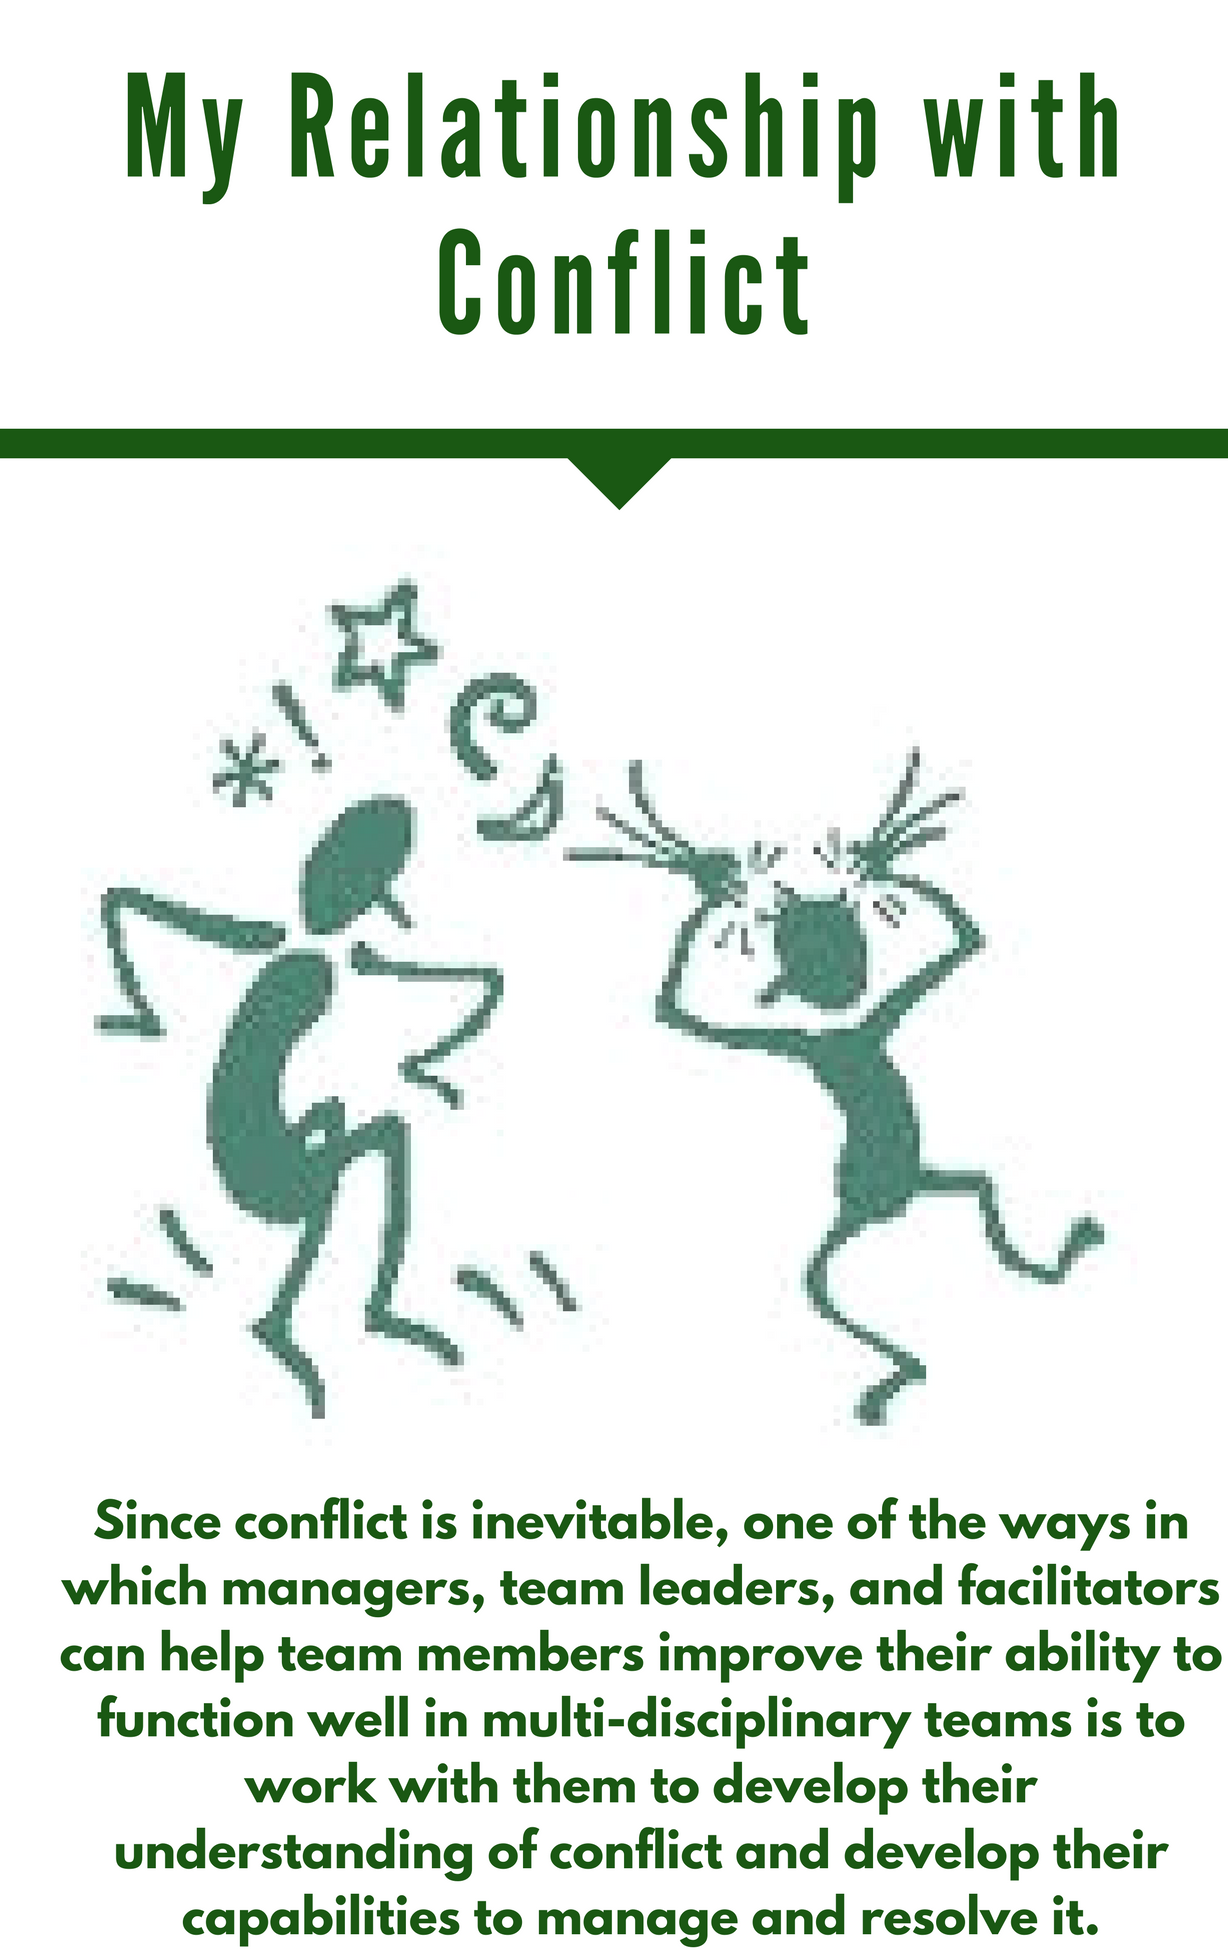 My Relationship with Conflict